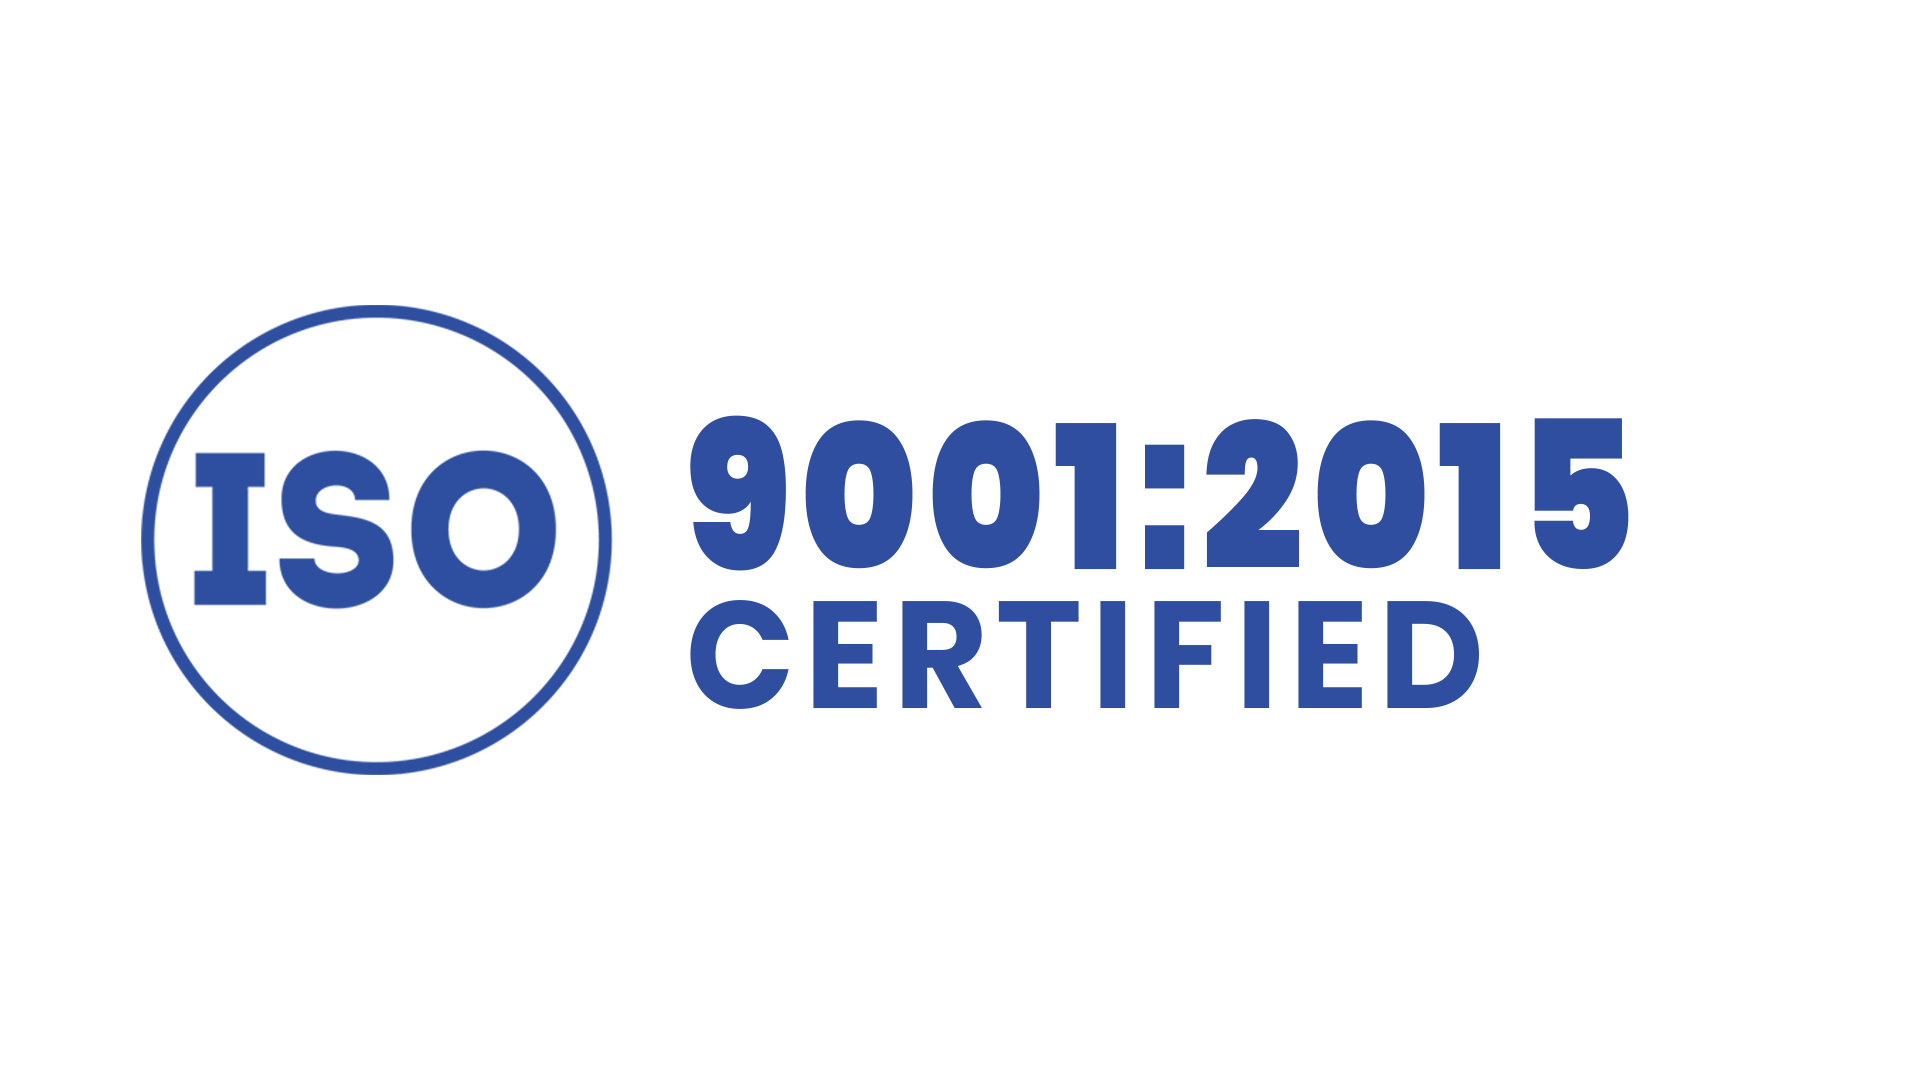 iso9001 Infolks Image annotation